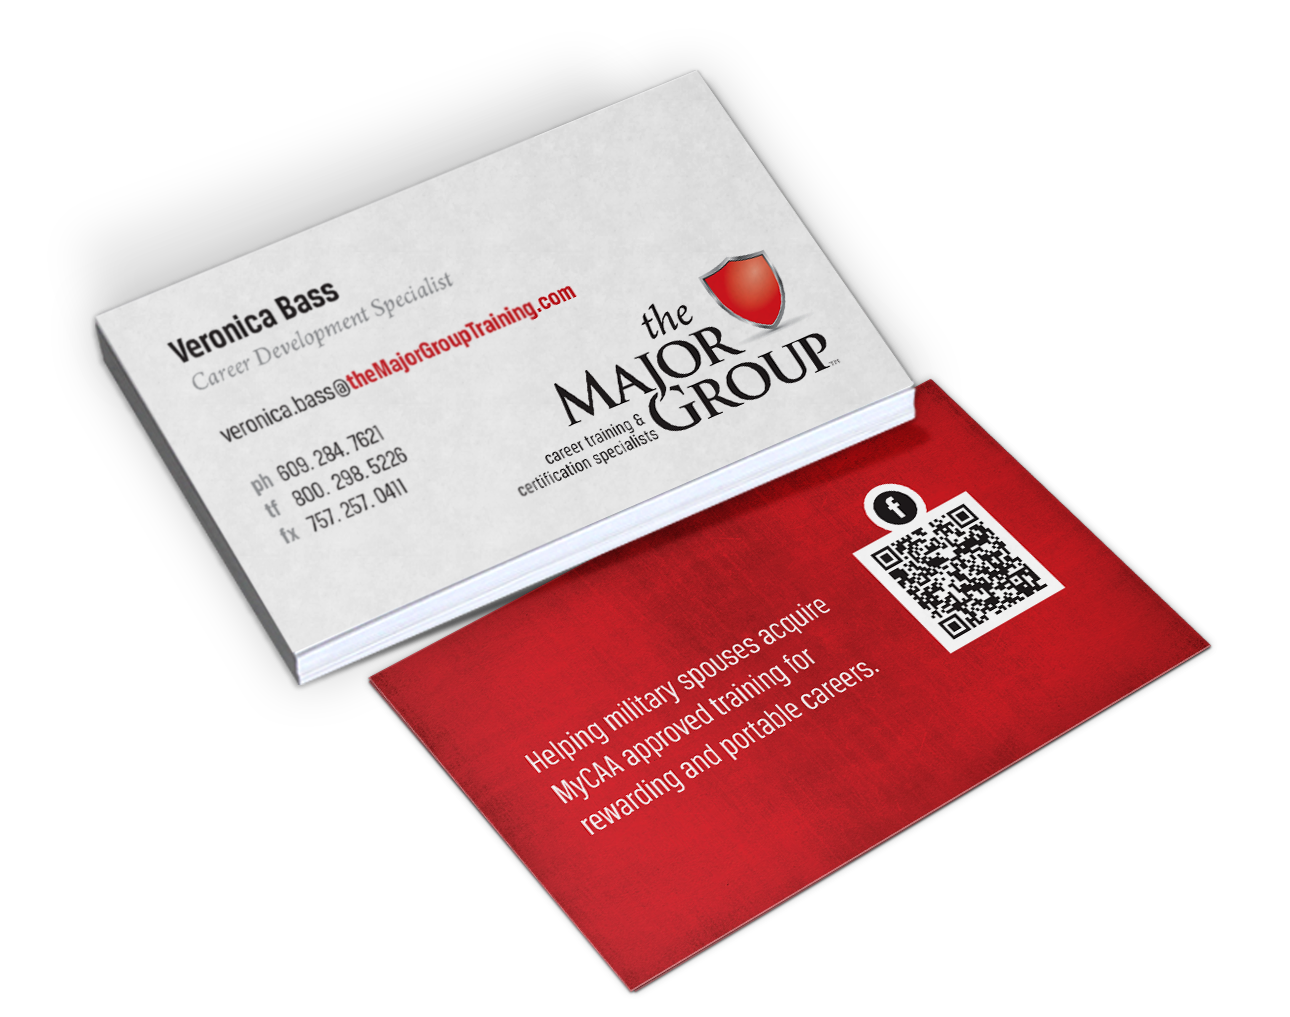 The Major Group business card design by Red Chalk Studios